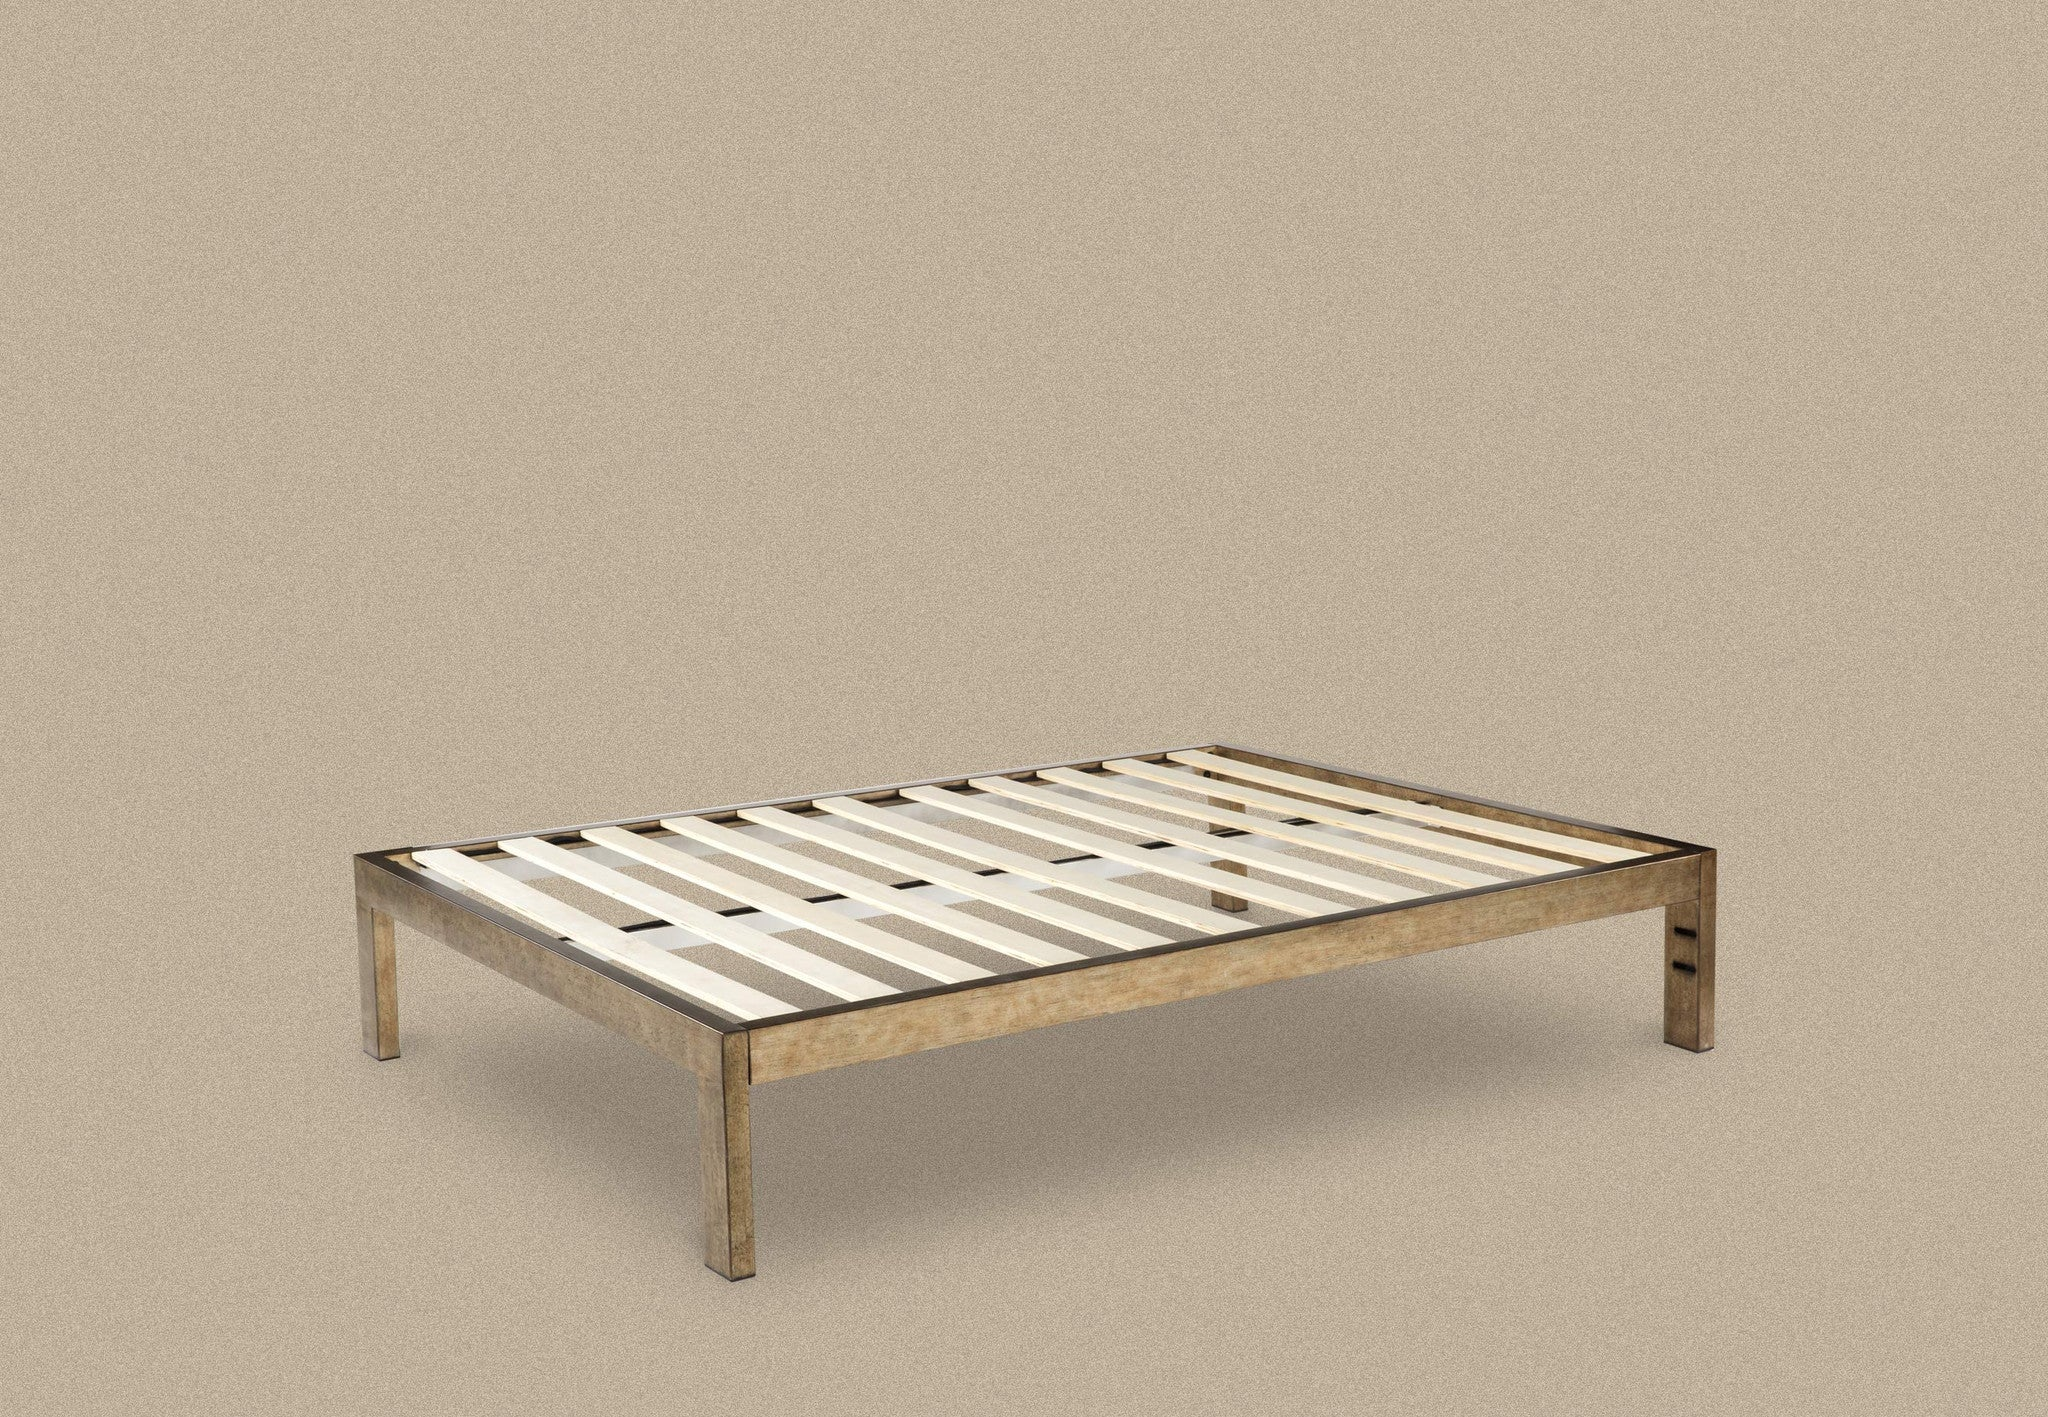 KEETSA - The Frame : All new designed, gold brushed steel bed frame.